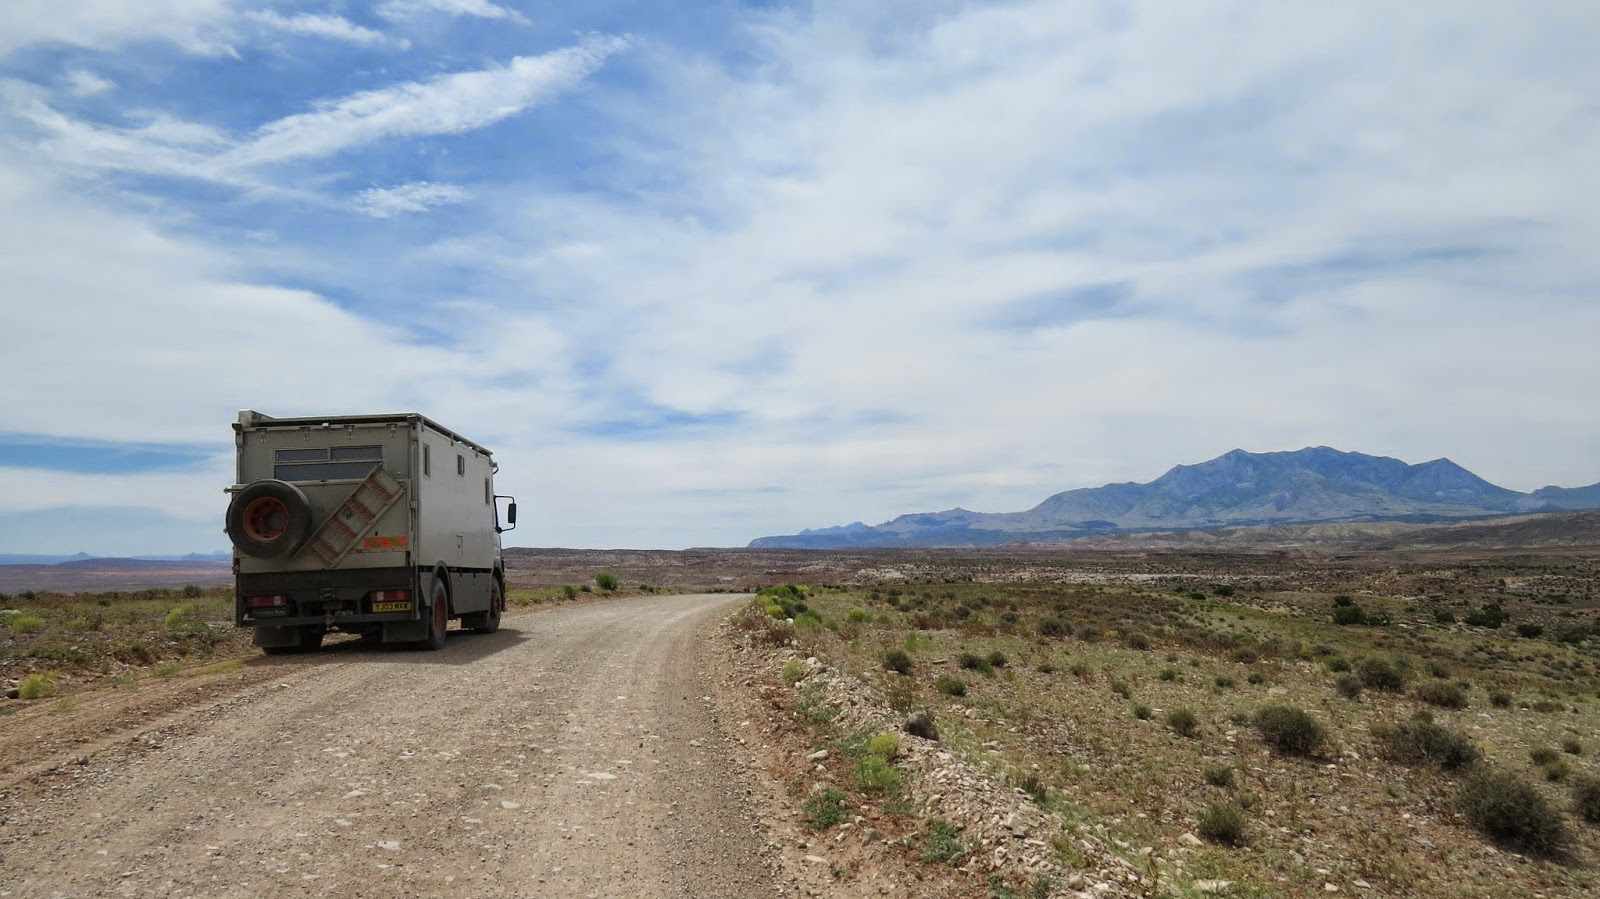 Jim the Mercedes 1823 overland motorhome posing on the dirt road heading towards Bromide Basin and Mount Ellen in the Henry Mountains, Utah